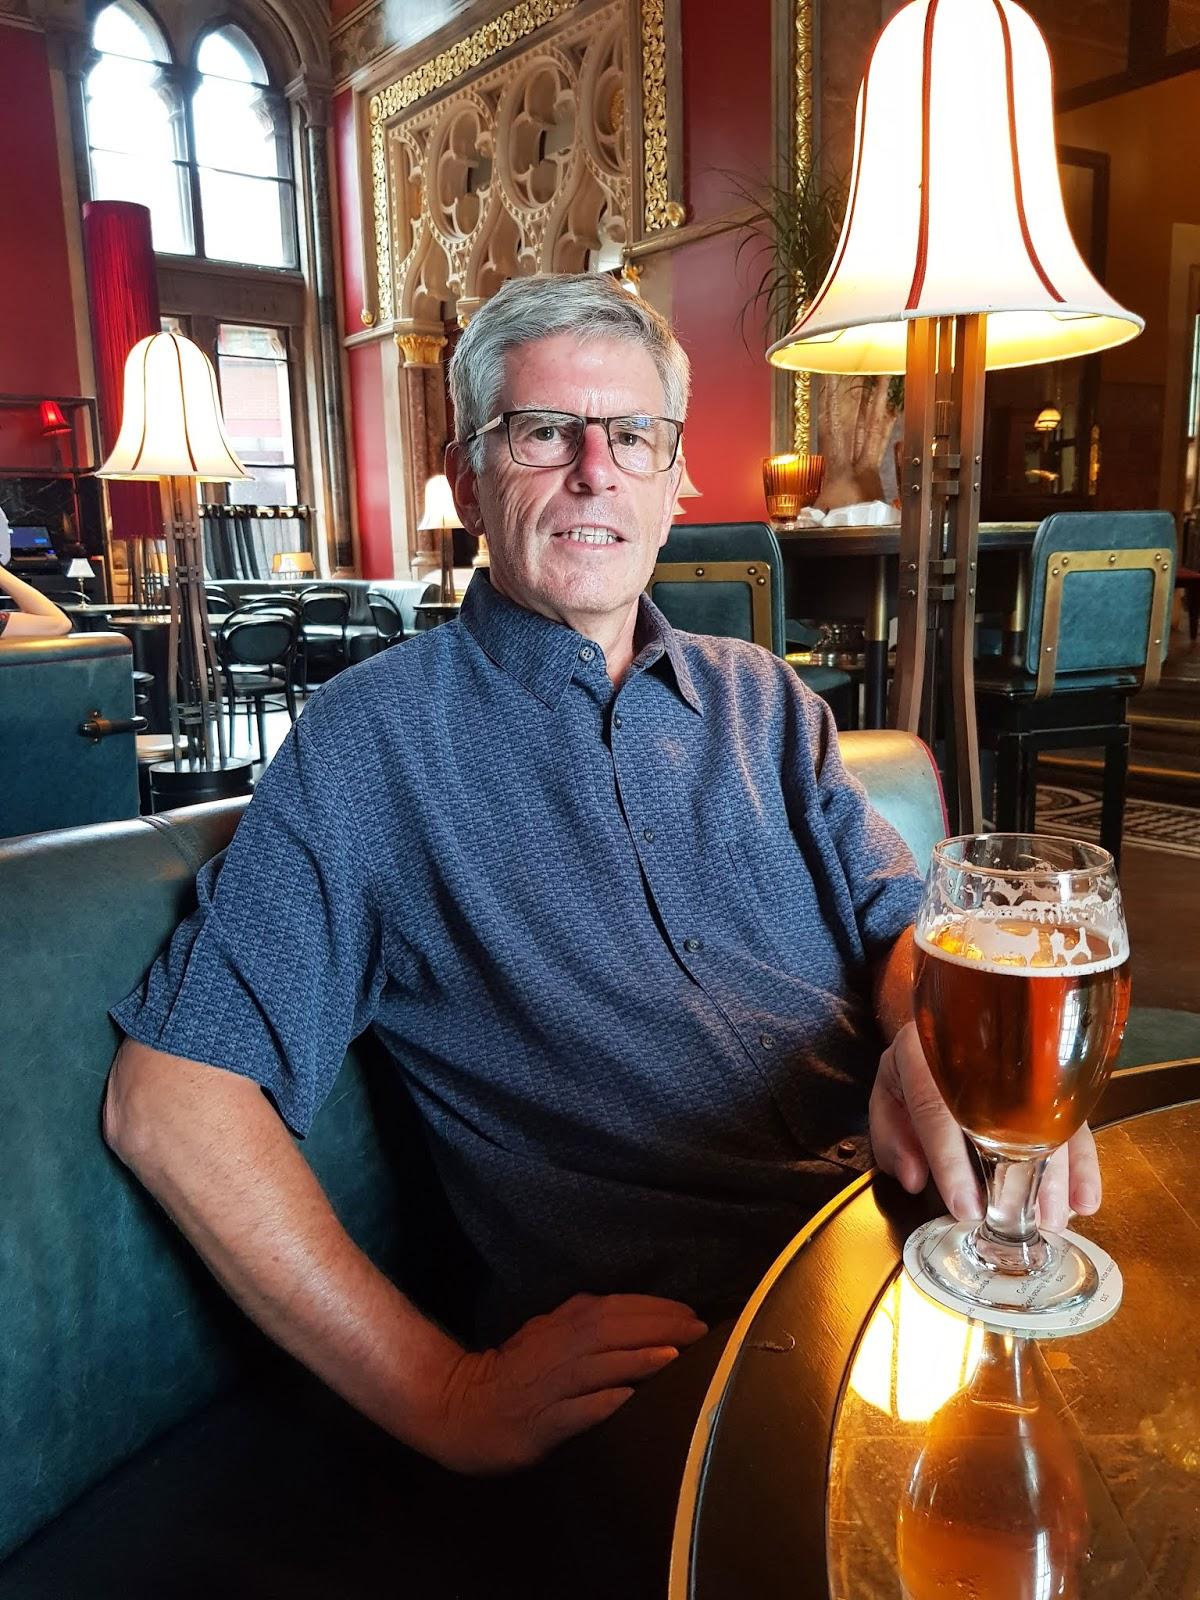 Over 60s man in blue silk shirt enjoying a pint at the Gilbert Scott restaurant in London